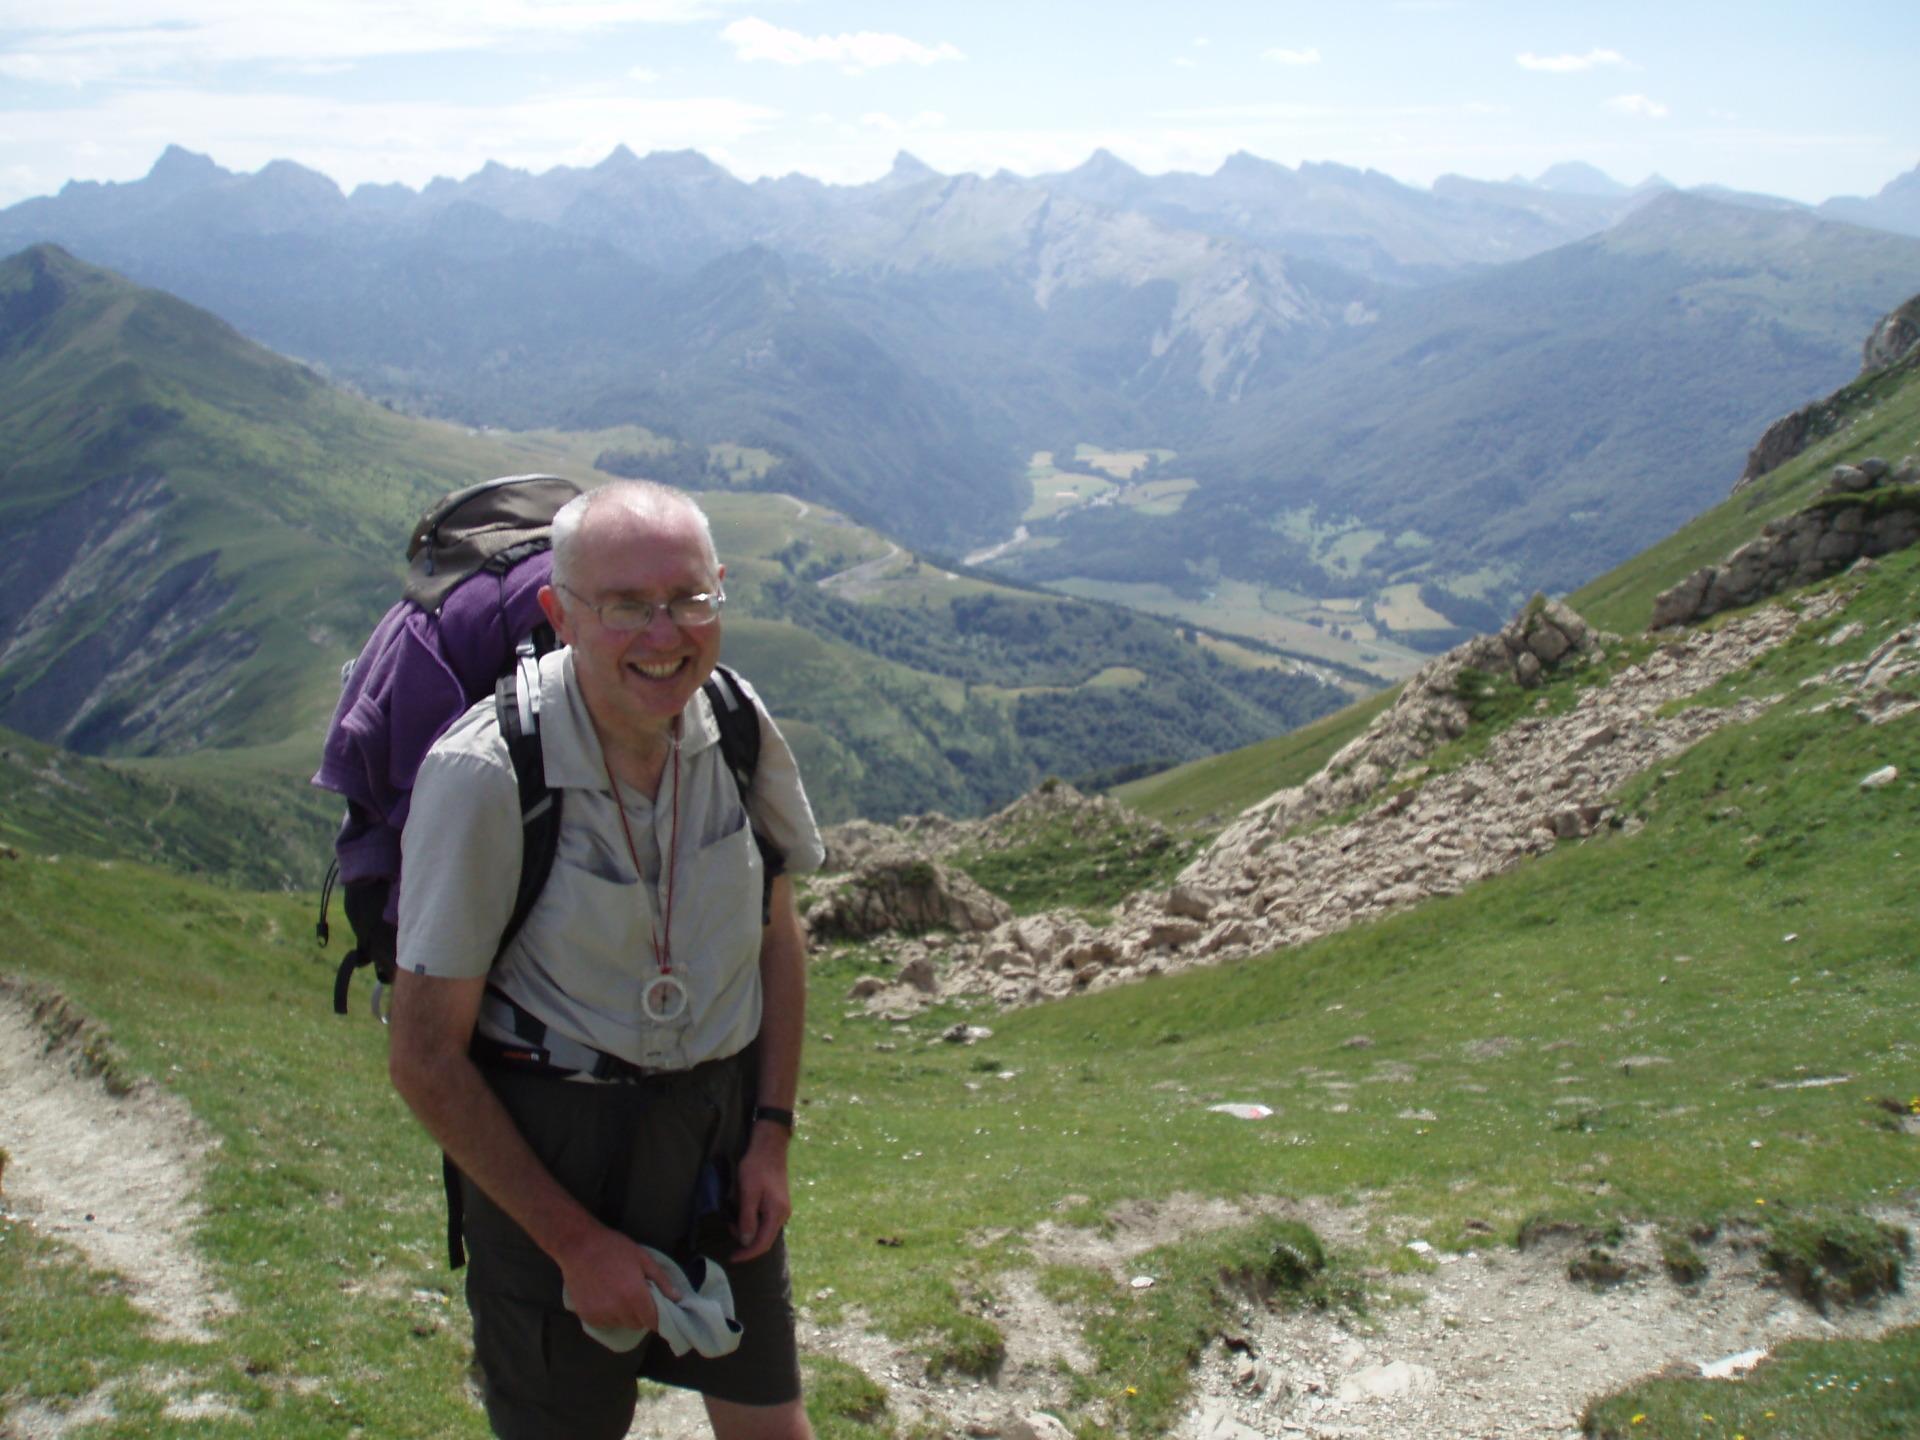 Trekking east to west along the Pyrenean GR10: Cauterets to Hendaye